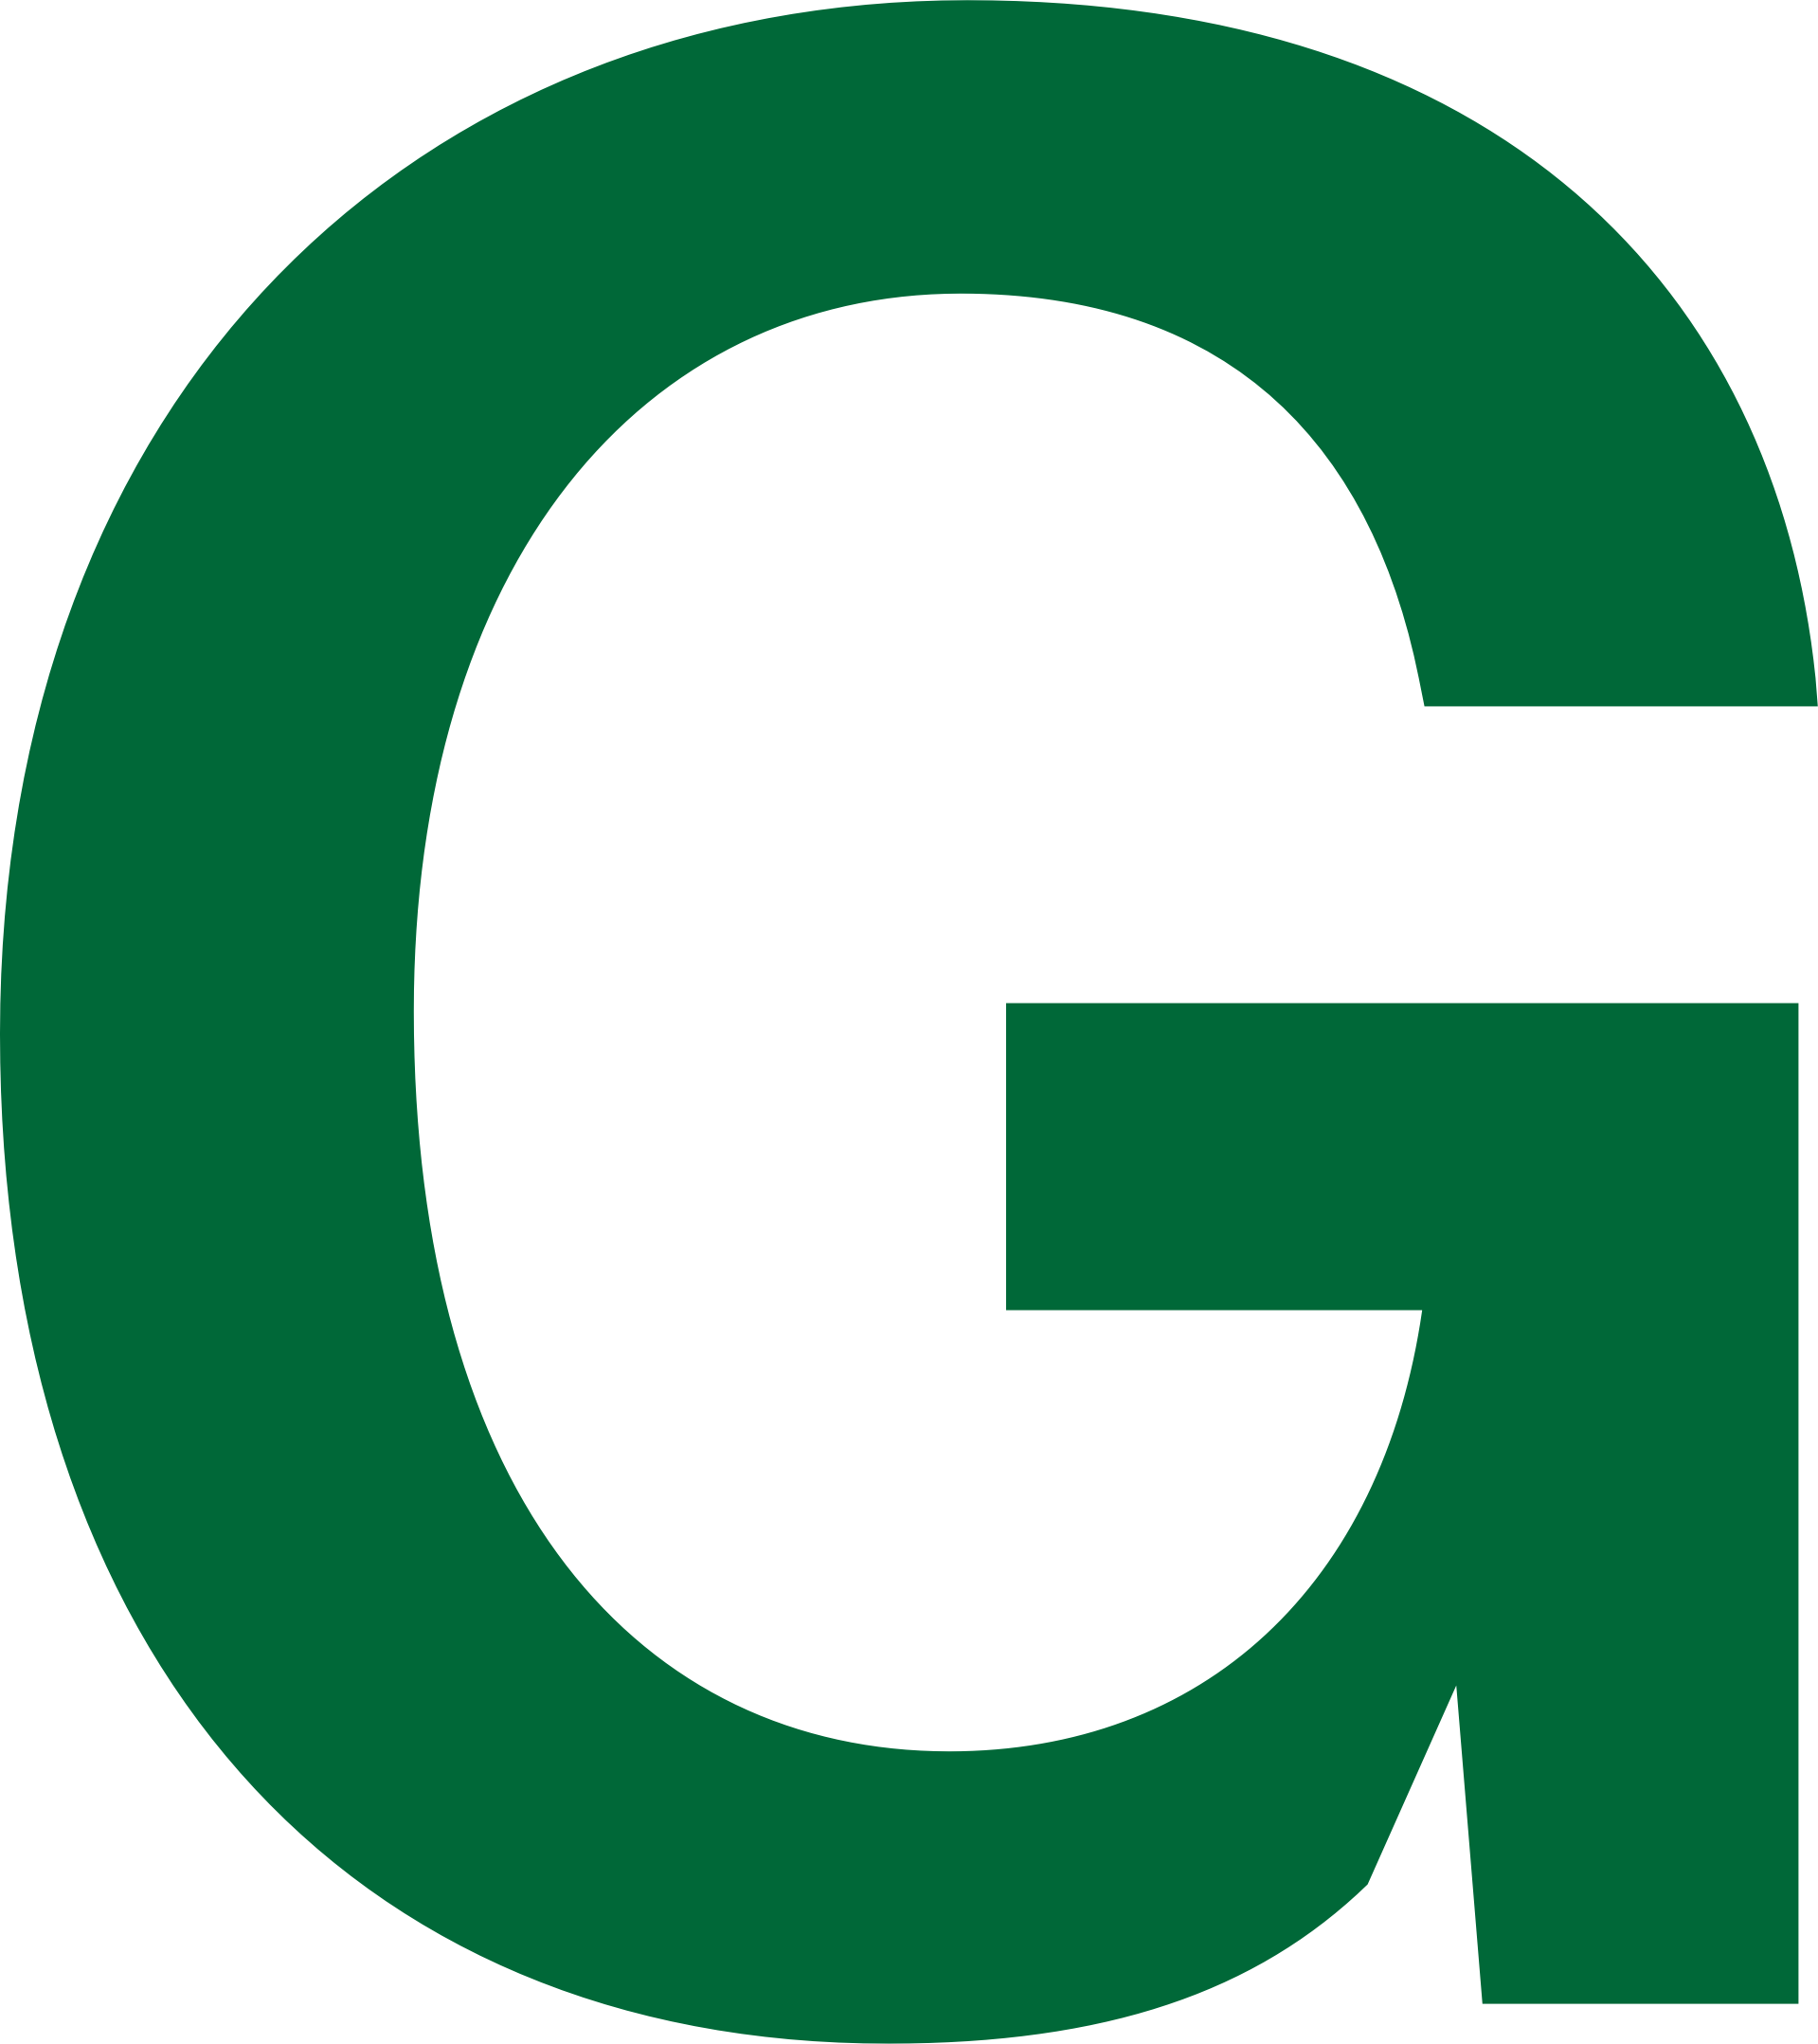 Transparent g big letter. Green icons png free